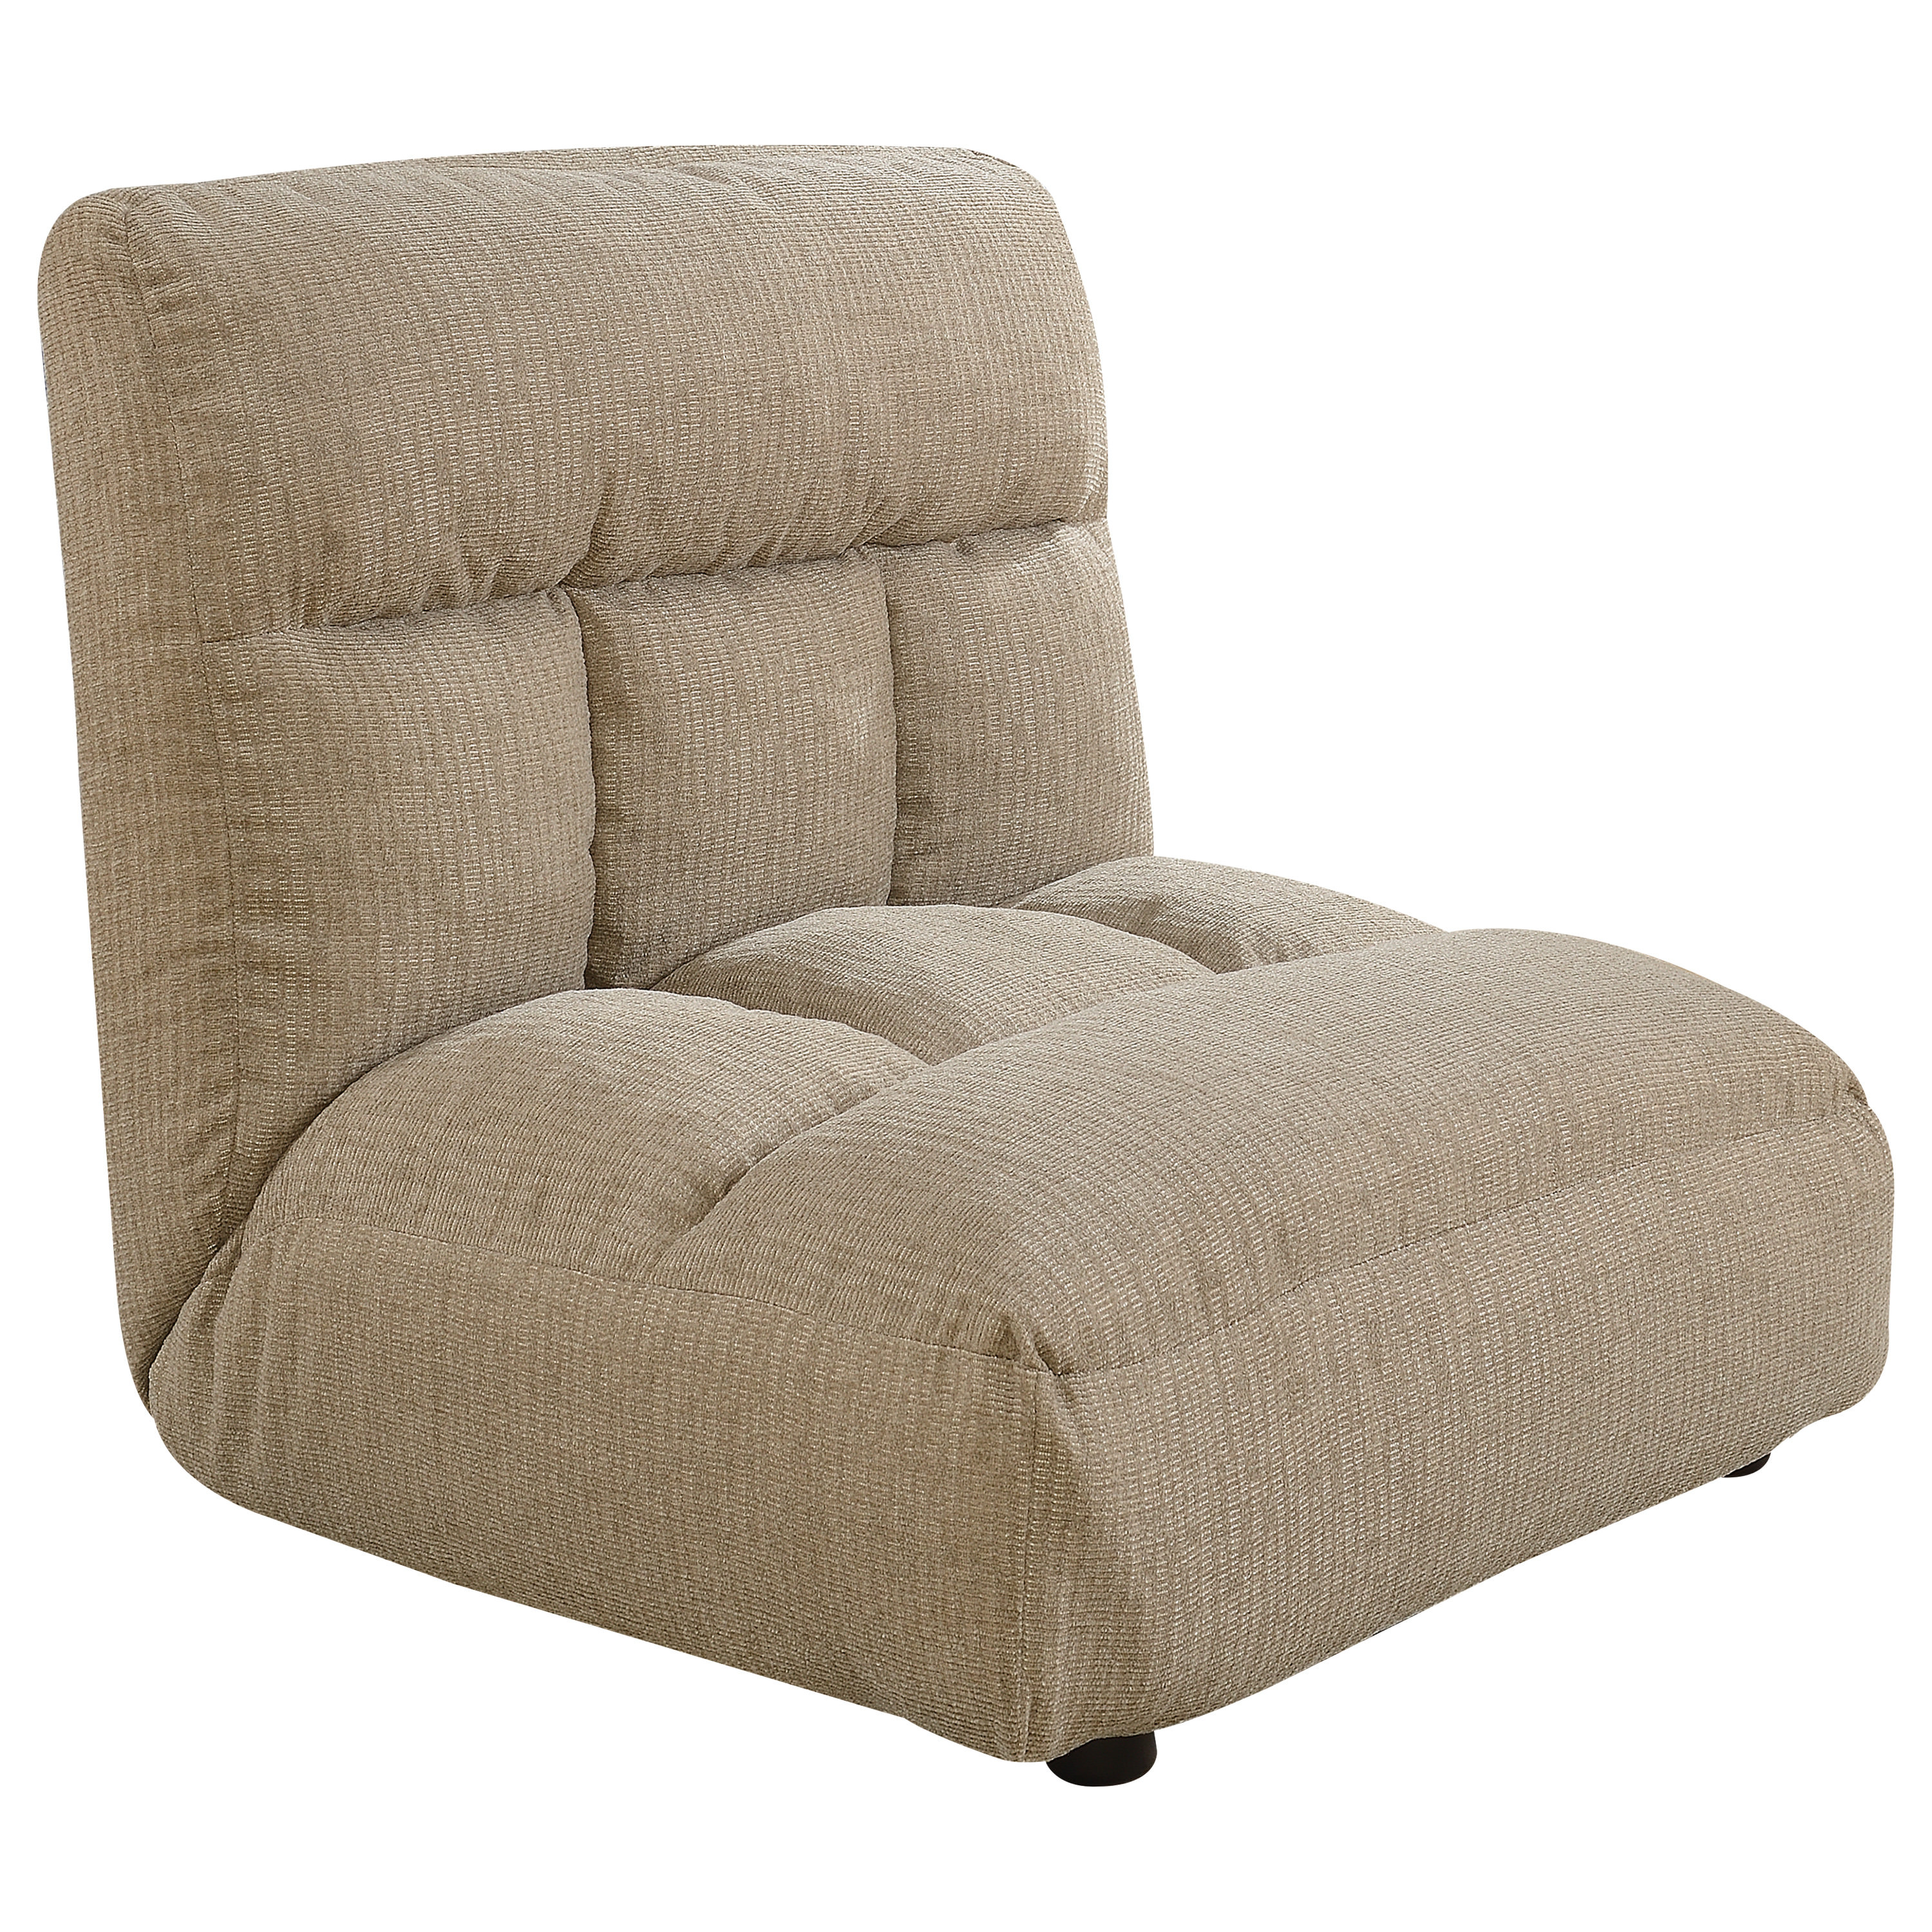 Wonderful ACME Emerin Convertible Futon Flip Lounge Chair In Tan Fabric